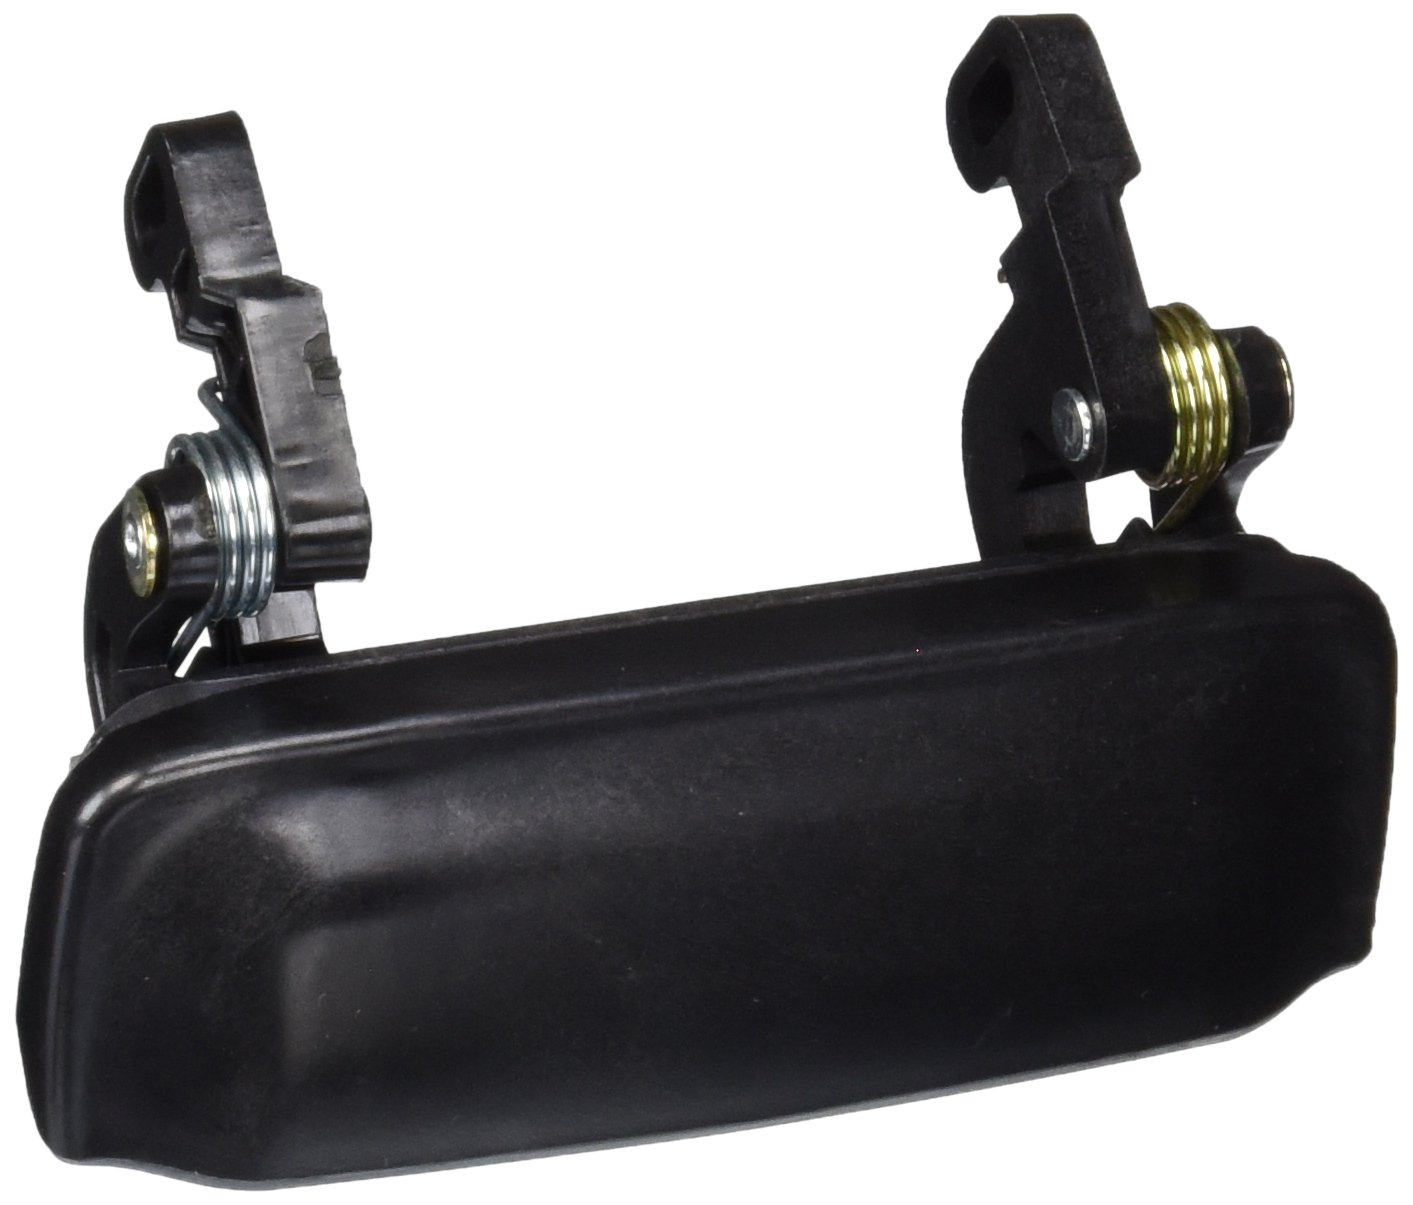 OE Replacement Ford Ranger Front Driver/Passenger Side Door Handle Outer (Partslink Number FO1310155)